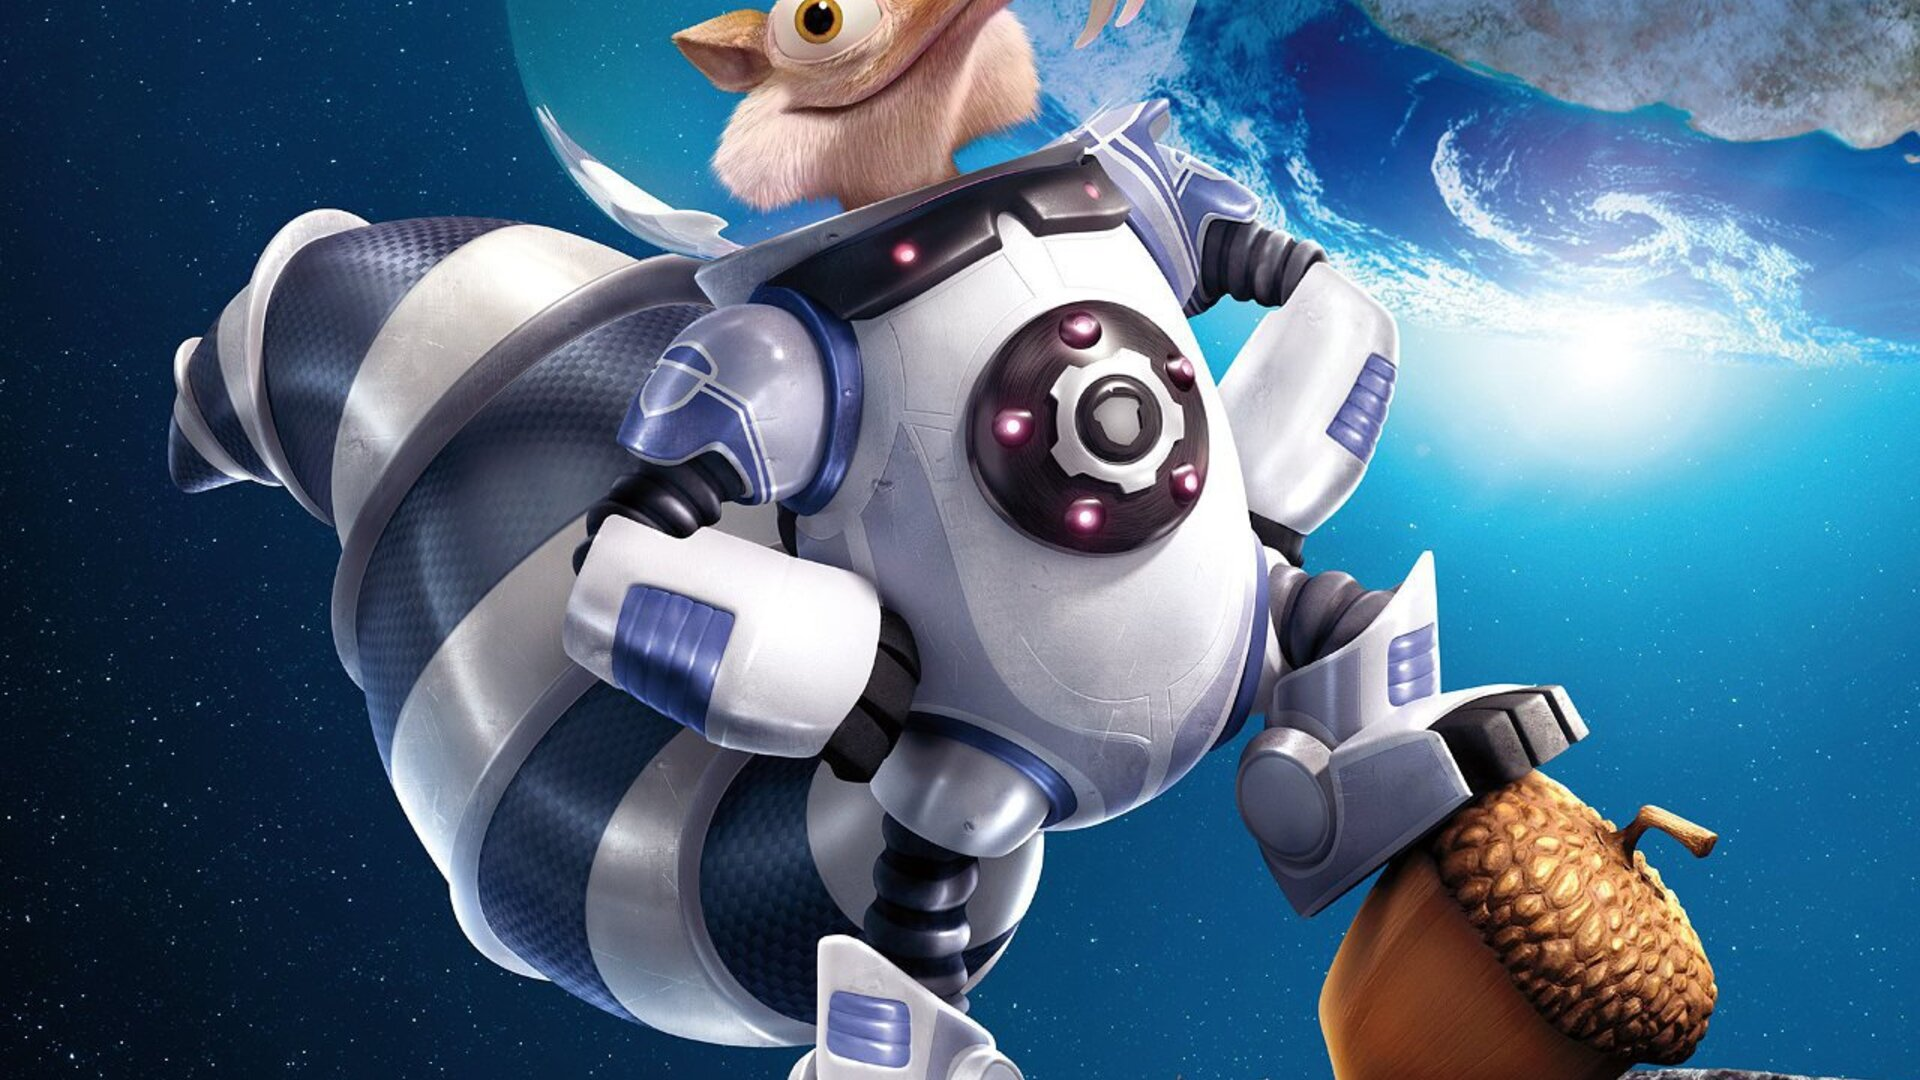 ice age 5 movie download hd